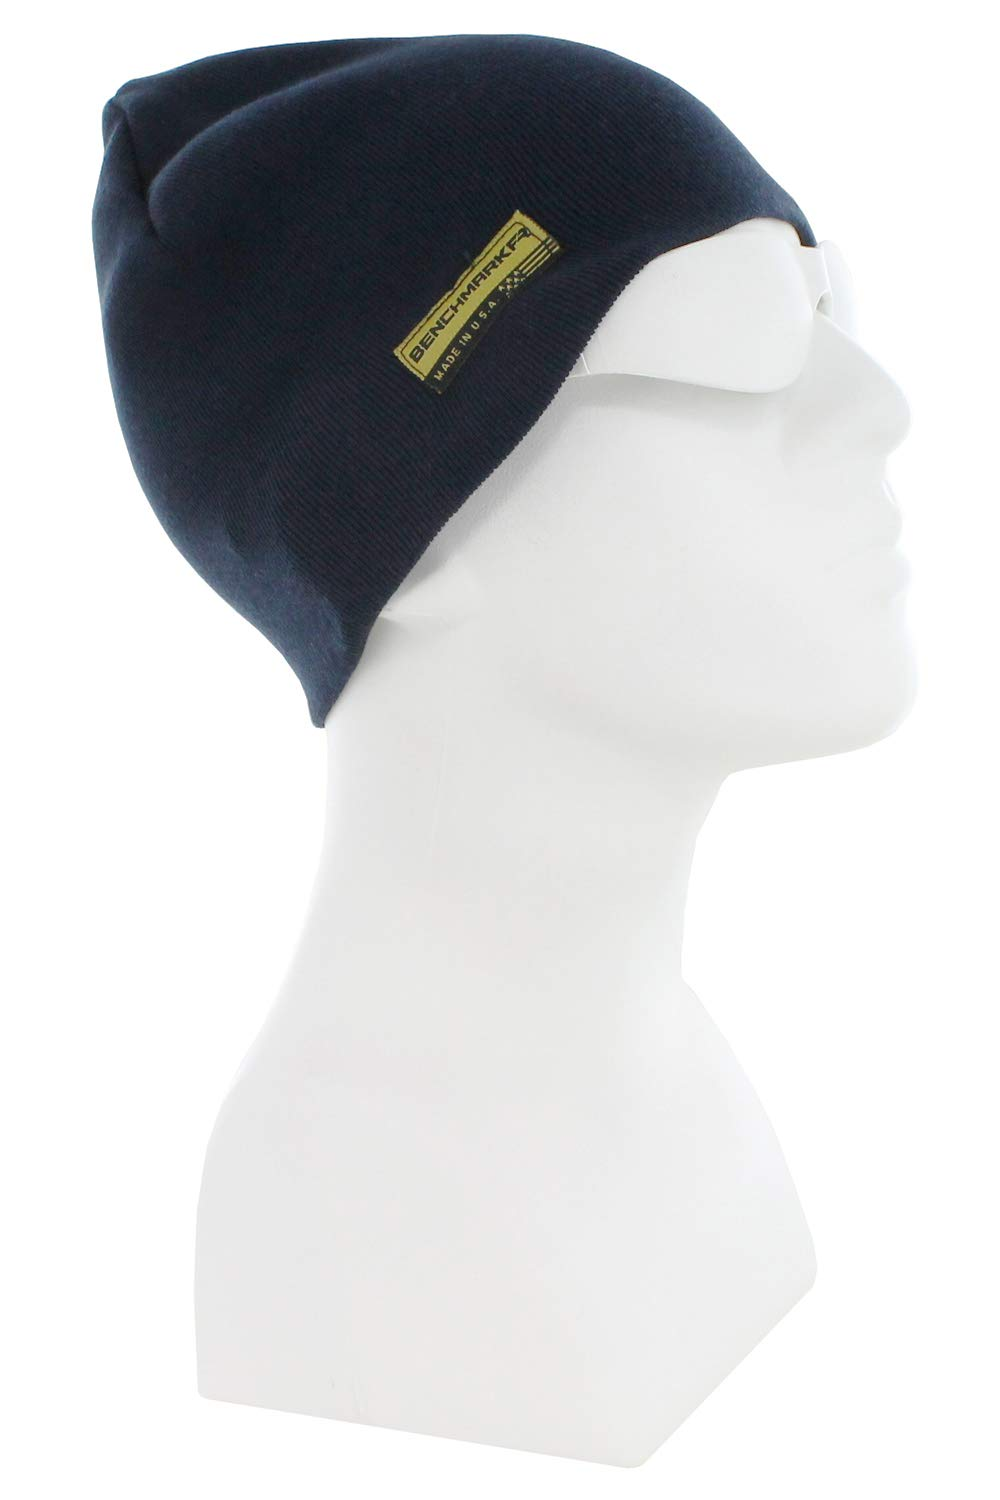 Benchmark FR Flame Resistant Skull Cap, Navy, CAT 3, One Size, Made in USA by BENCHMARK FR